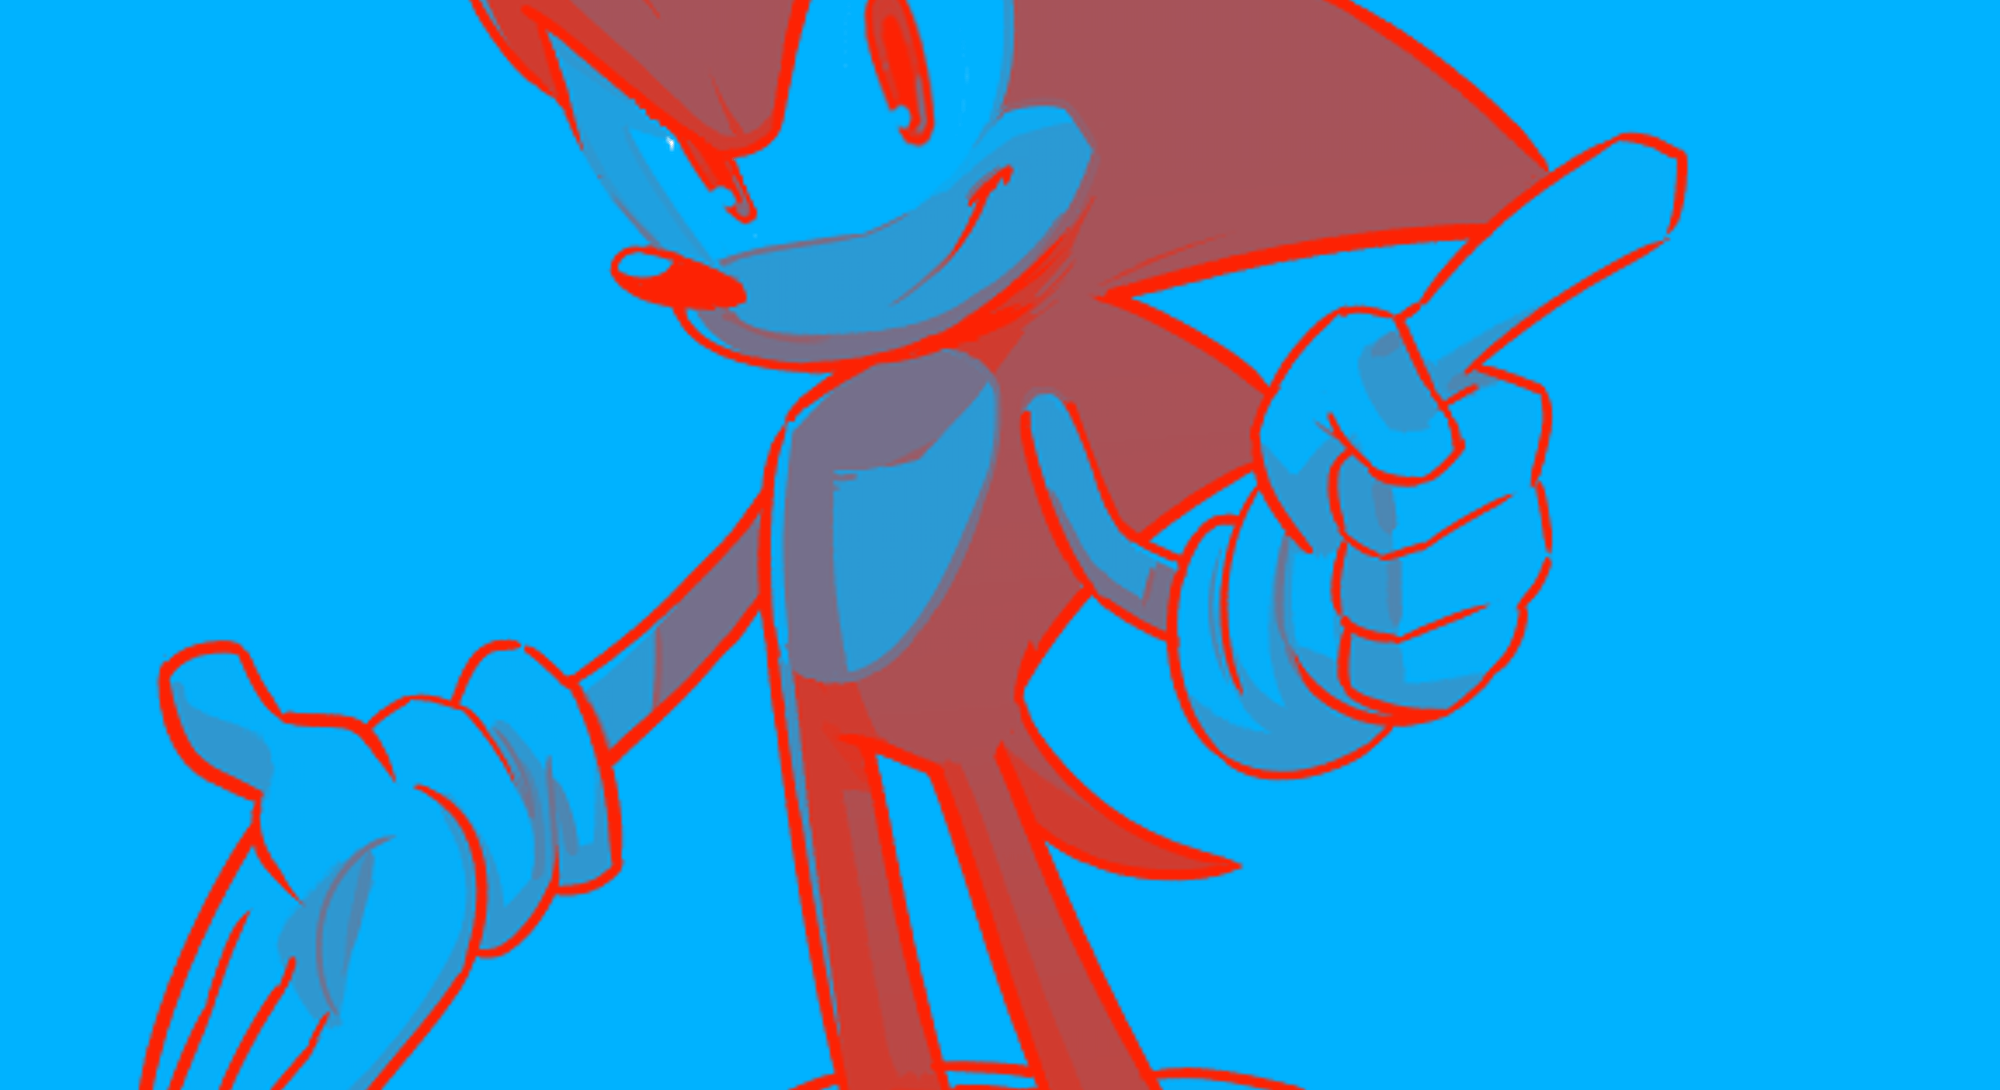 Sonice the Hedgehog from Sega's classic video games franchise. Video games. Sonic. Sega.